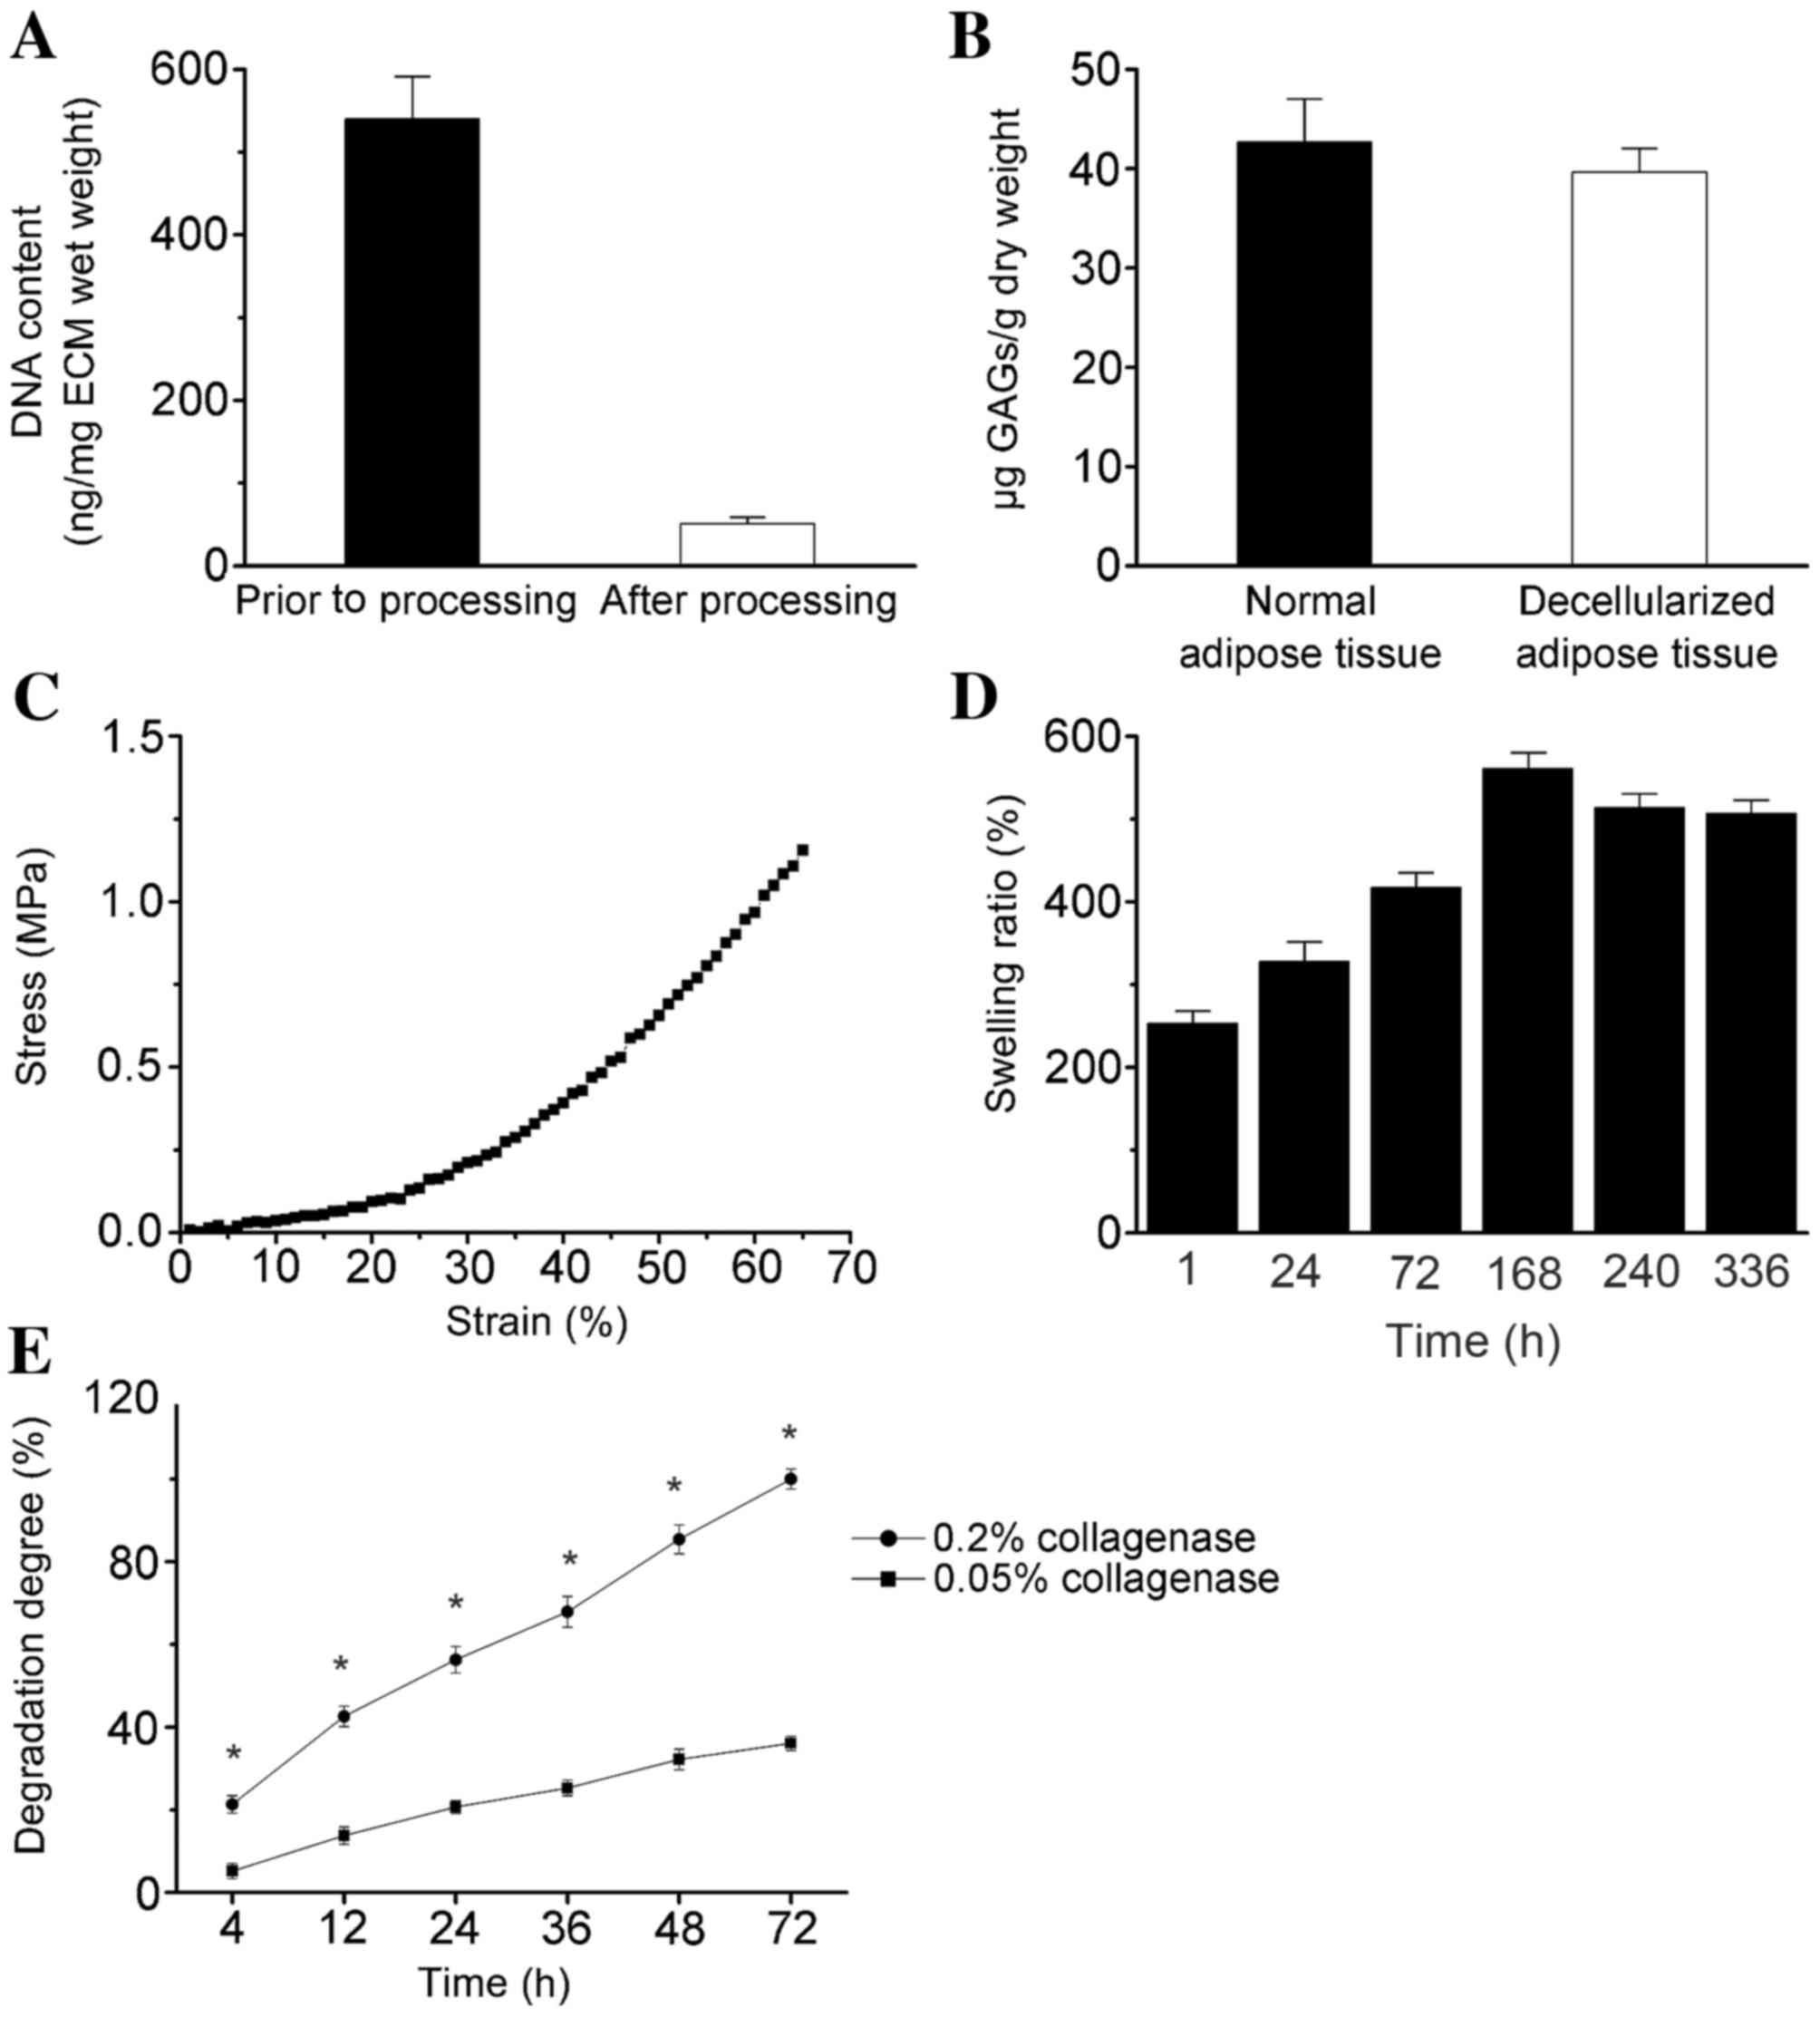 biochemical analysis of rice Previous article in issue: ultrasonic pretreatment improves the high-temperature liquefaction of corn starch at high concentrations previous article in issue: ultrasonic pretreatment improves the high-temperature liquefaction of corn starch at high concentrations.